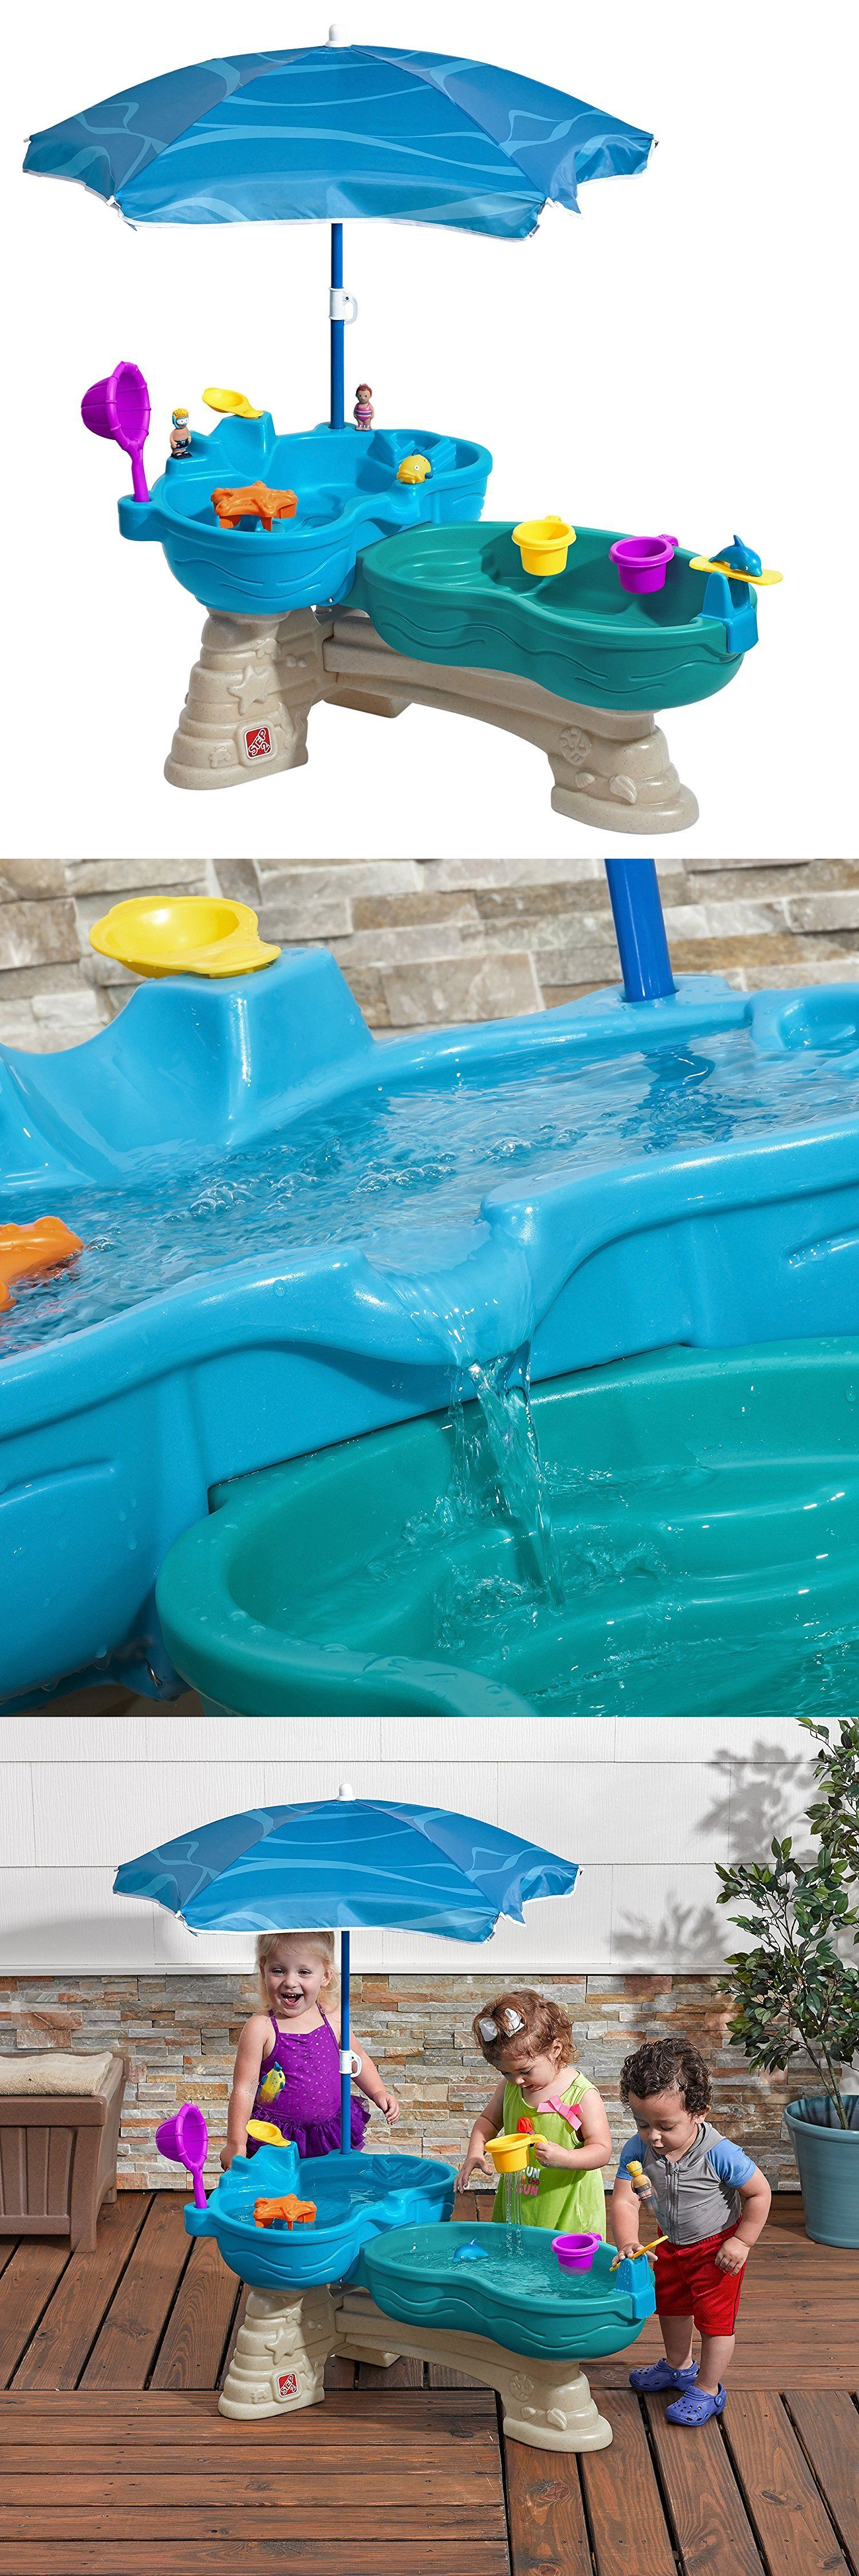 Step 2 Water Table For Kids Toddlers With Umbrella Toys